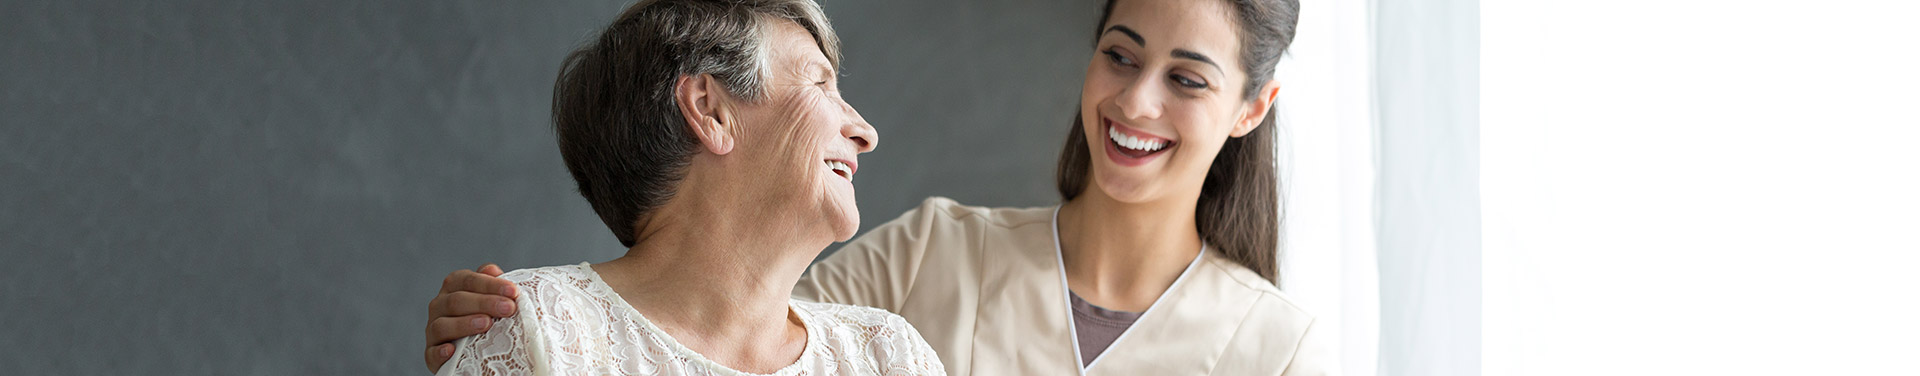 about-prn-home-health-therapy-wisconsin-banner